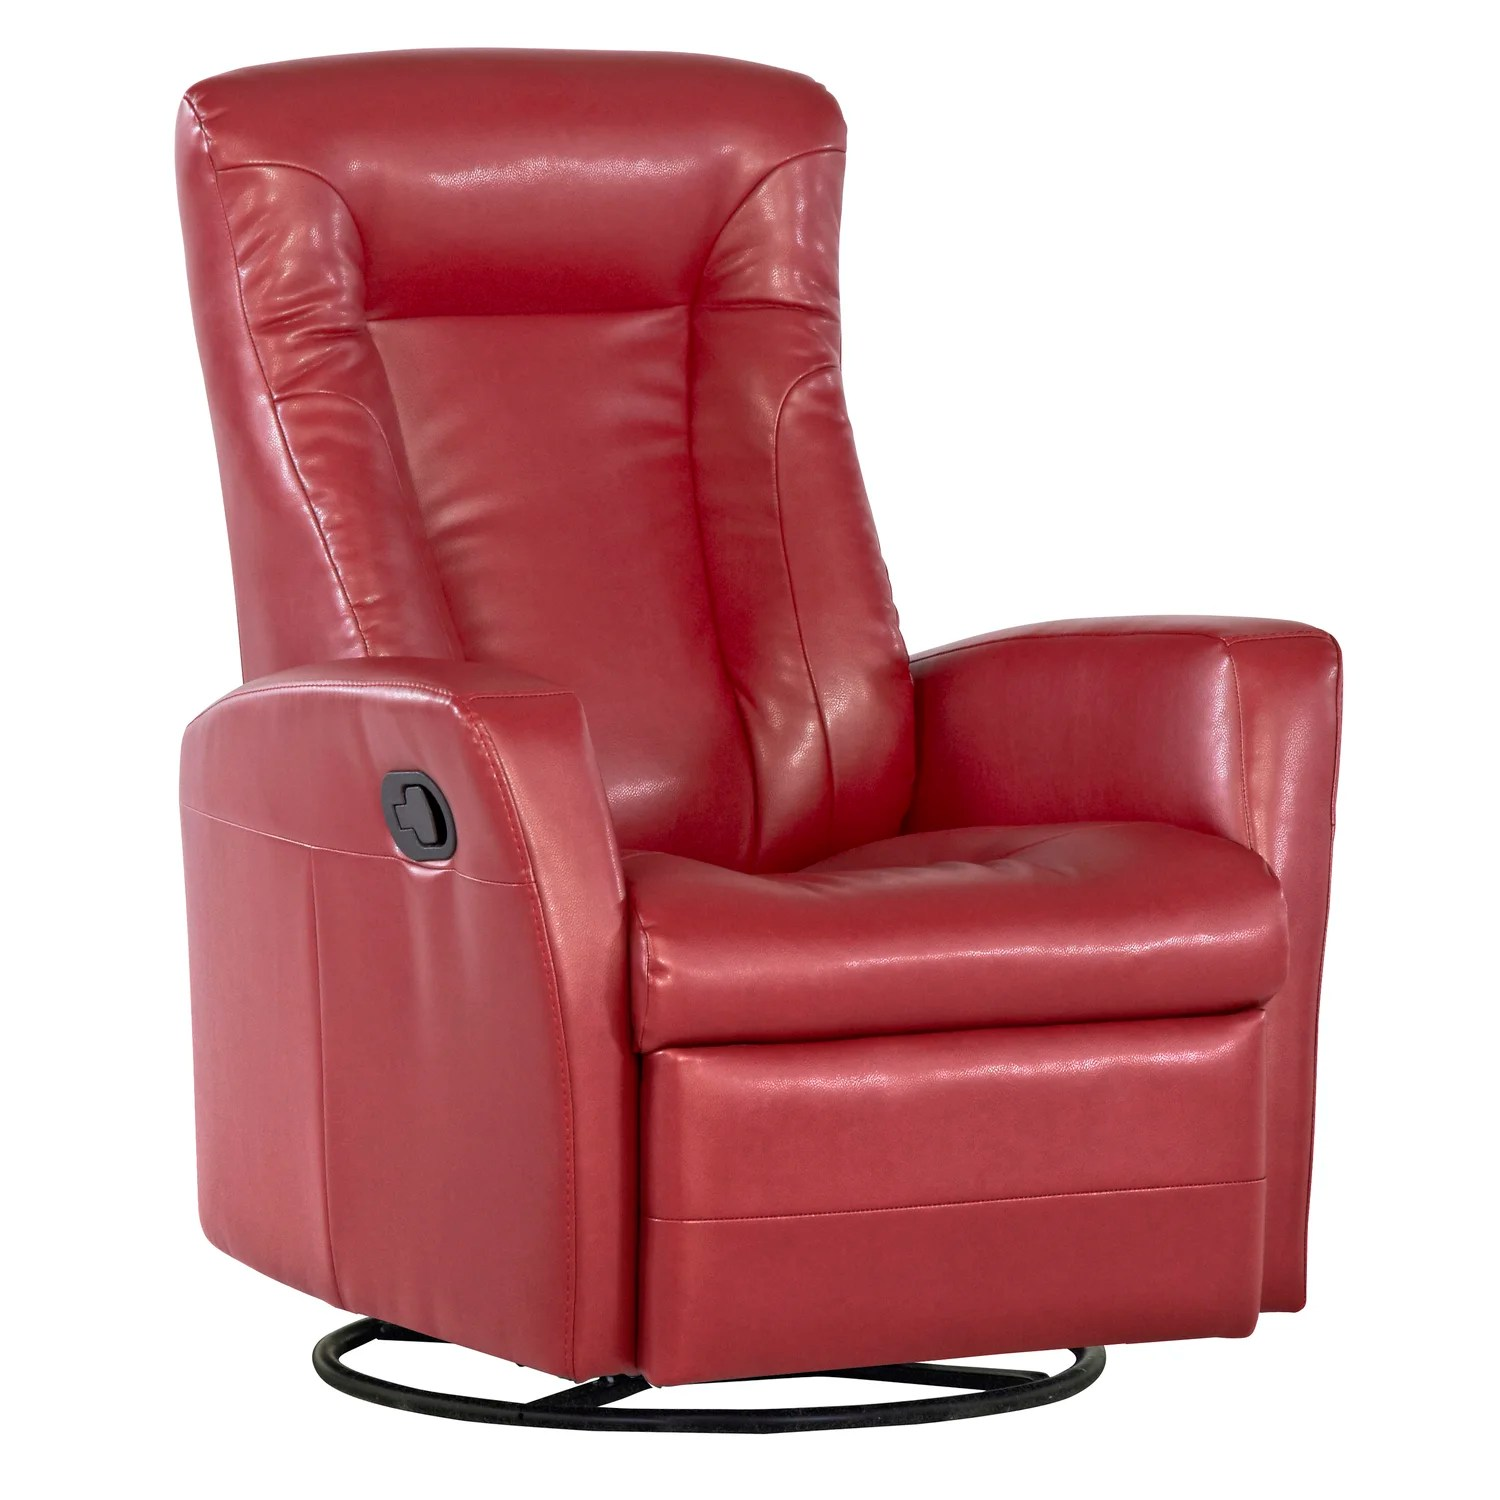 push button recliner chairs chair cover hire grantham for the home on pinterest recliners kitchen islands and